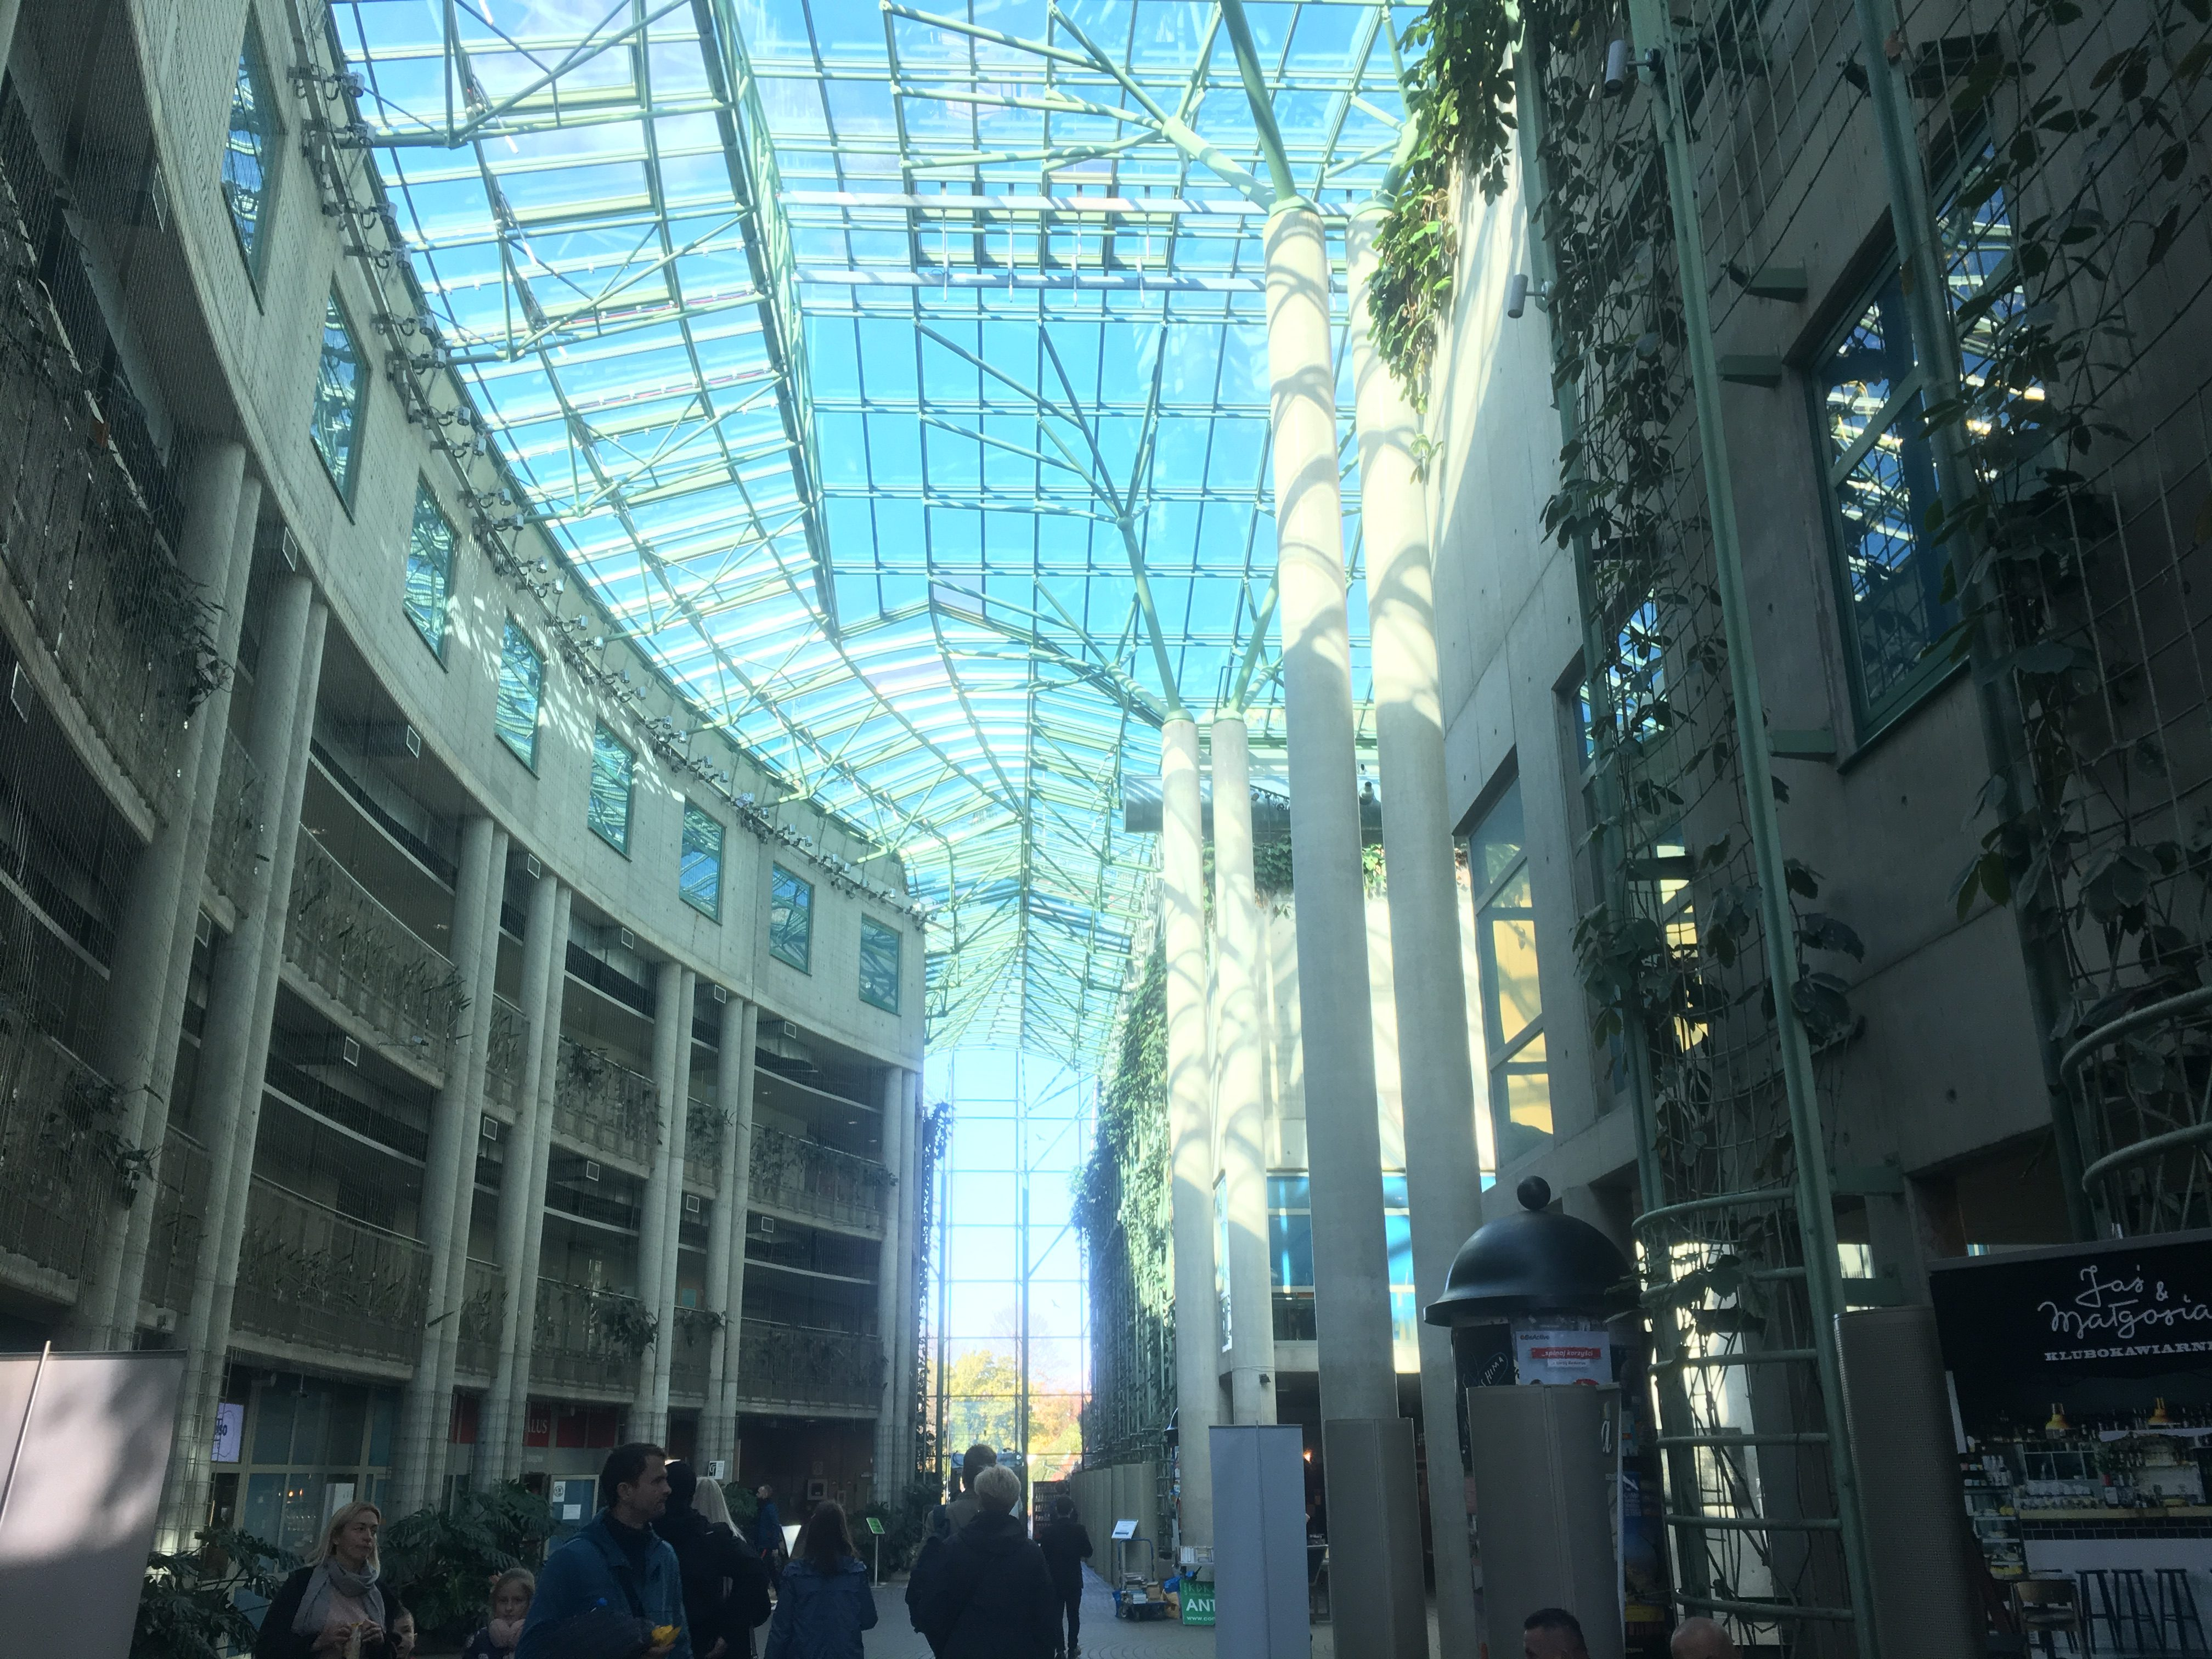 University of Warsaw Library atrium